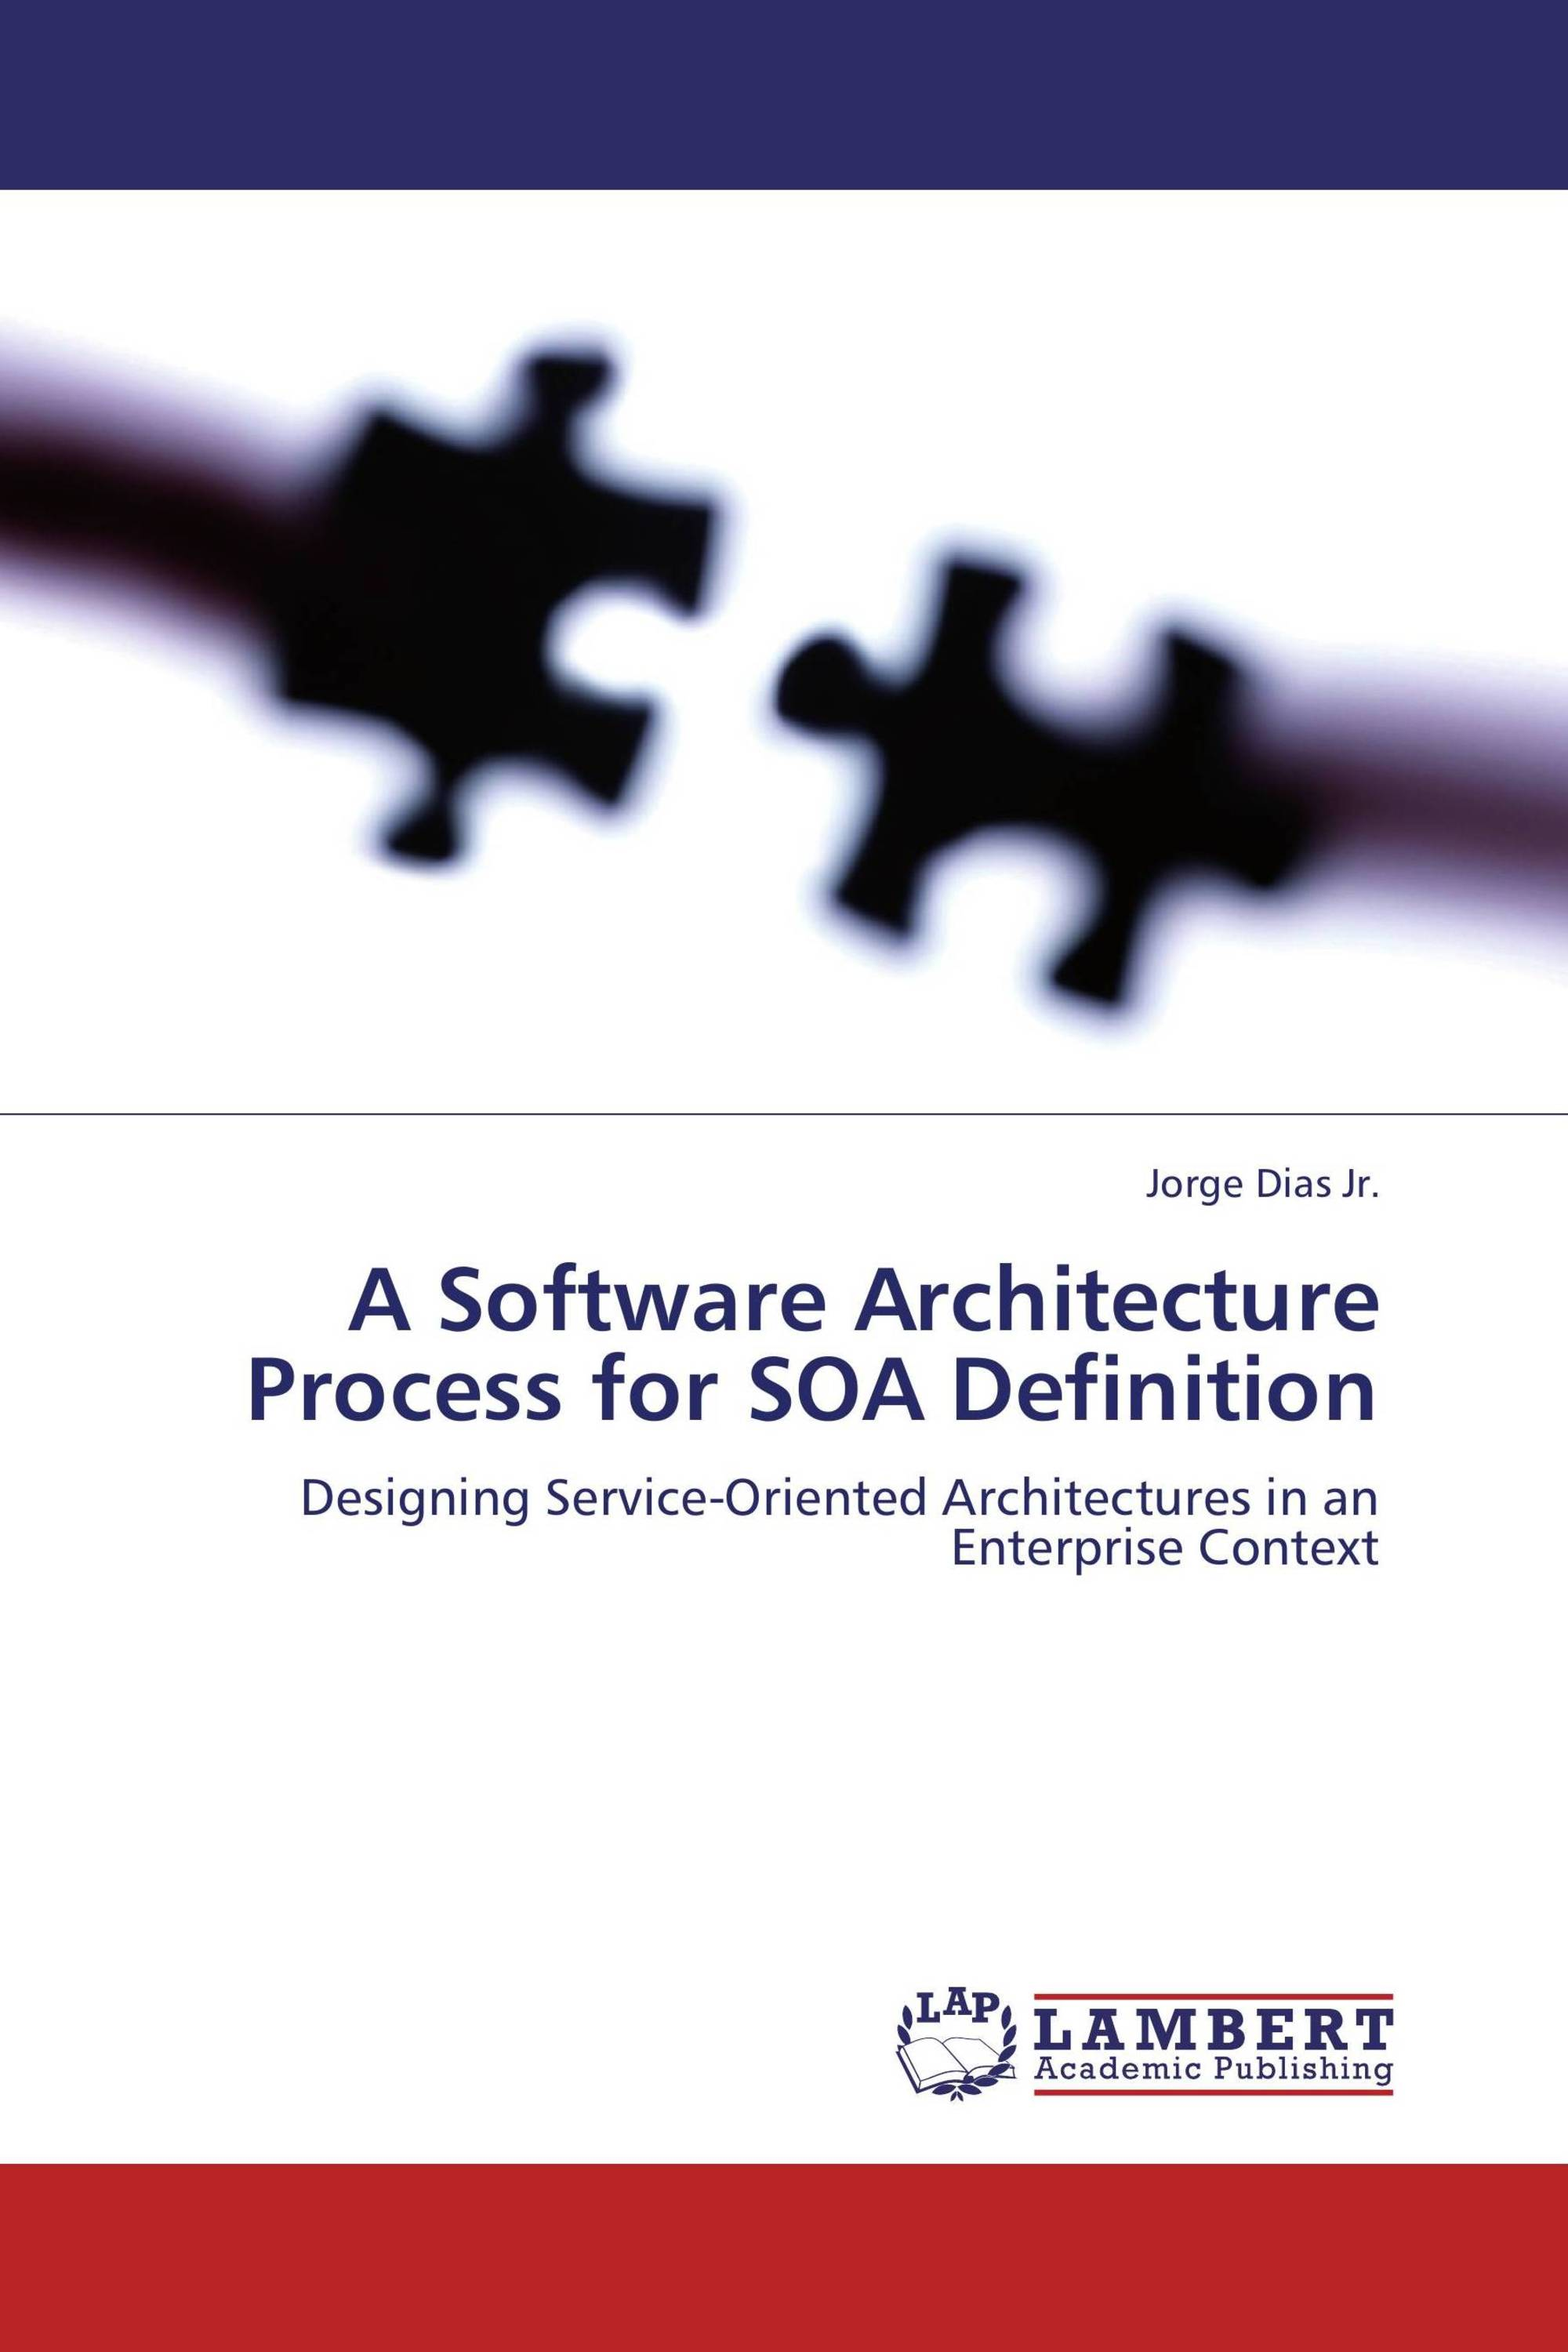 A Software Architecture Process for SOA Definition